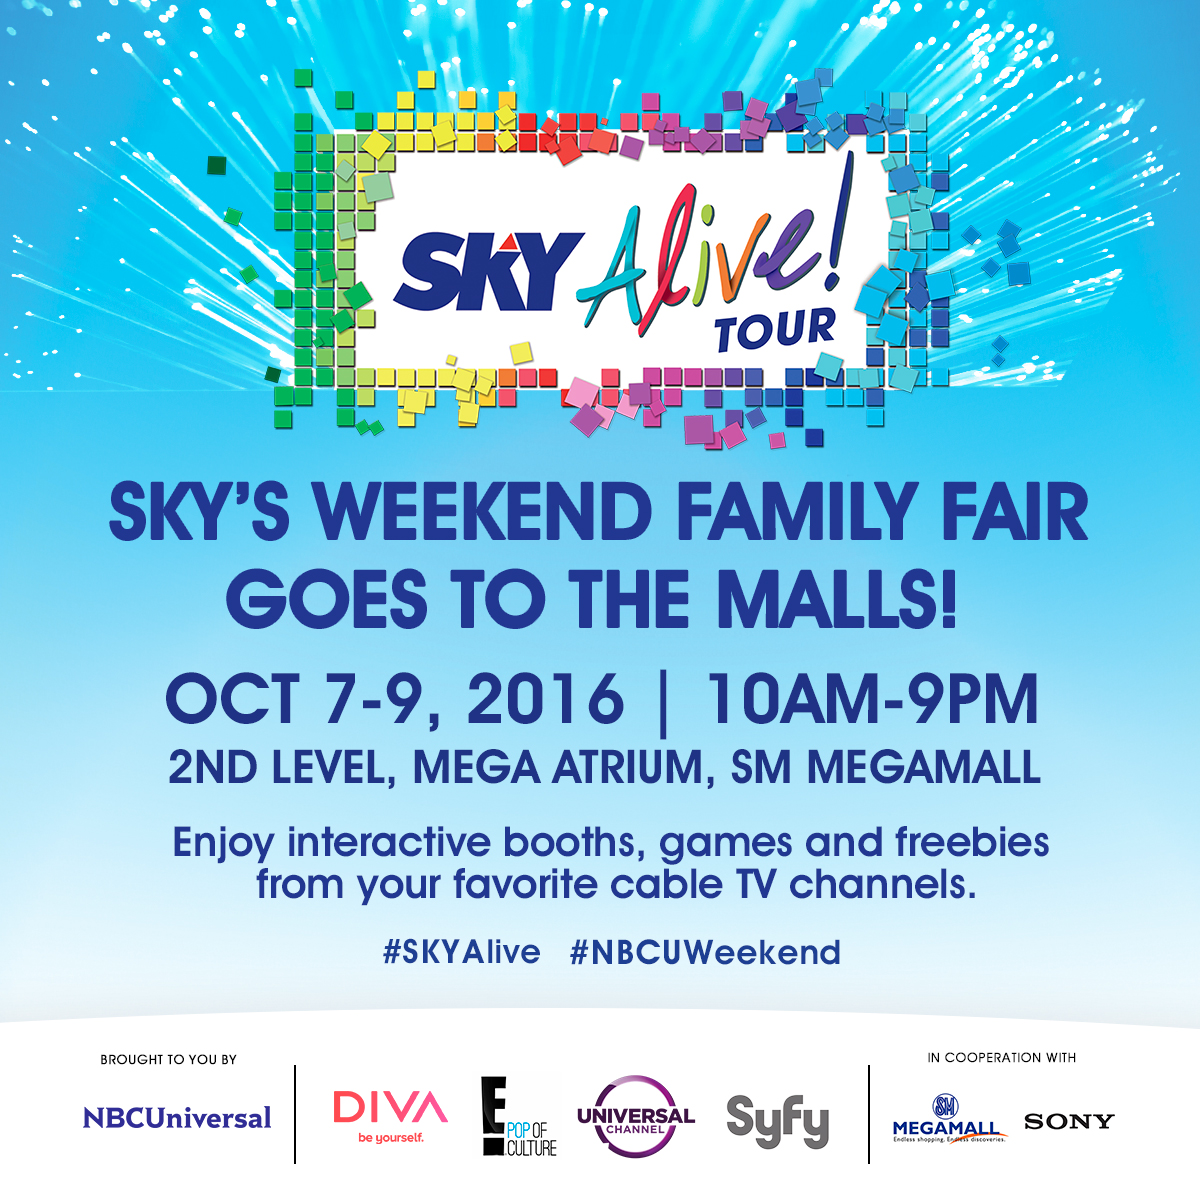 Play movie trivia games, Sing a la Mariah as SKY Alive! tour brings NBC Universal to SM Megamall on October 7 to 9